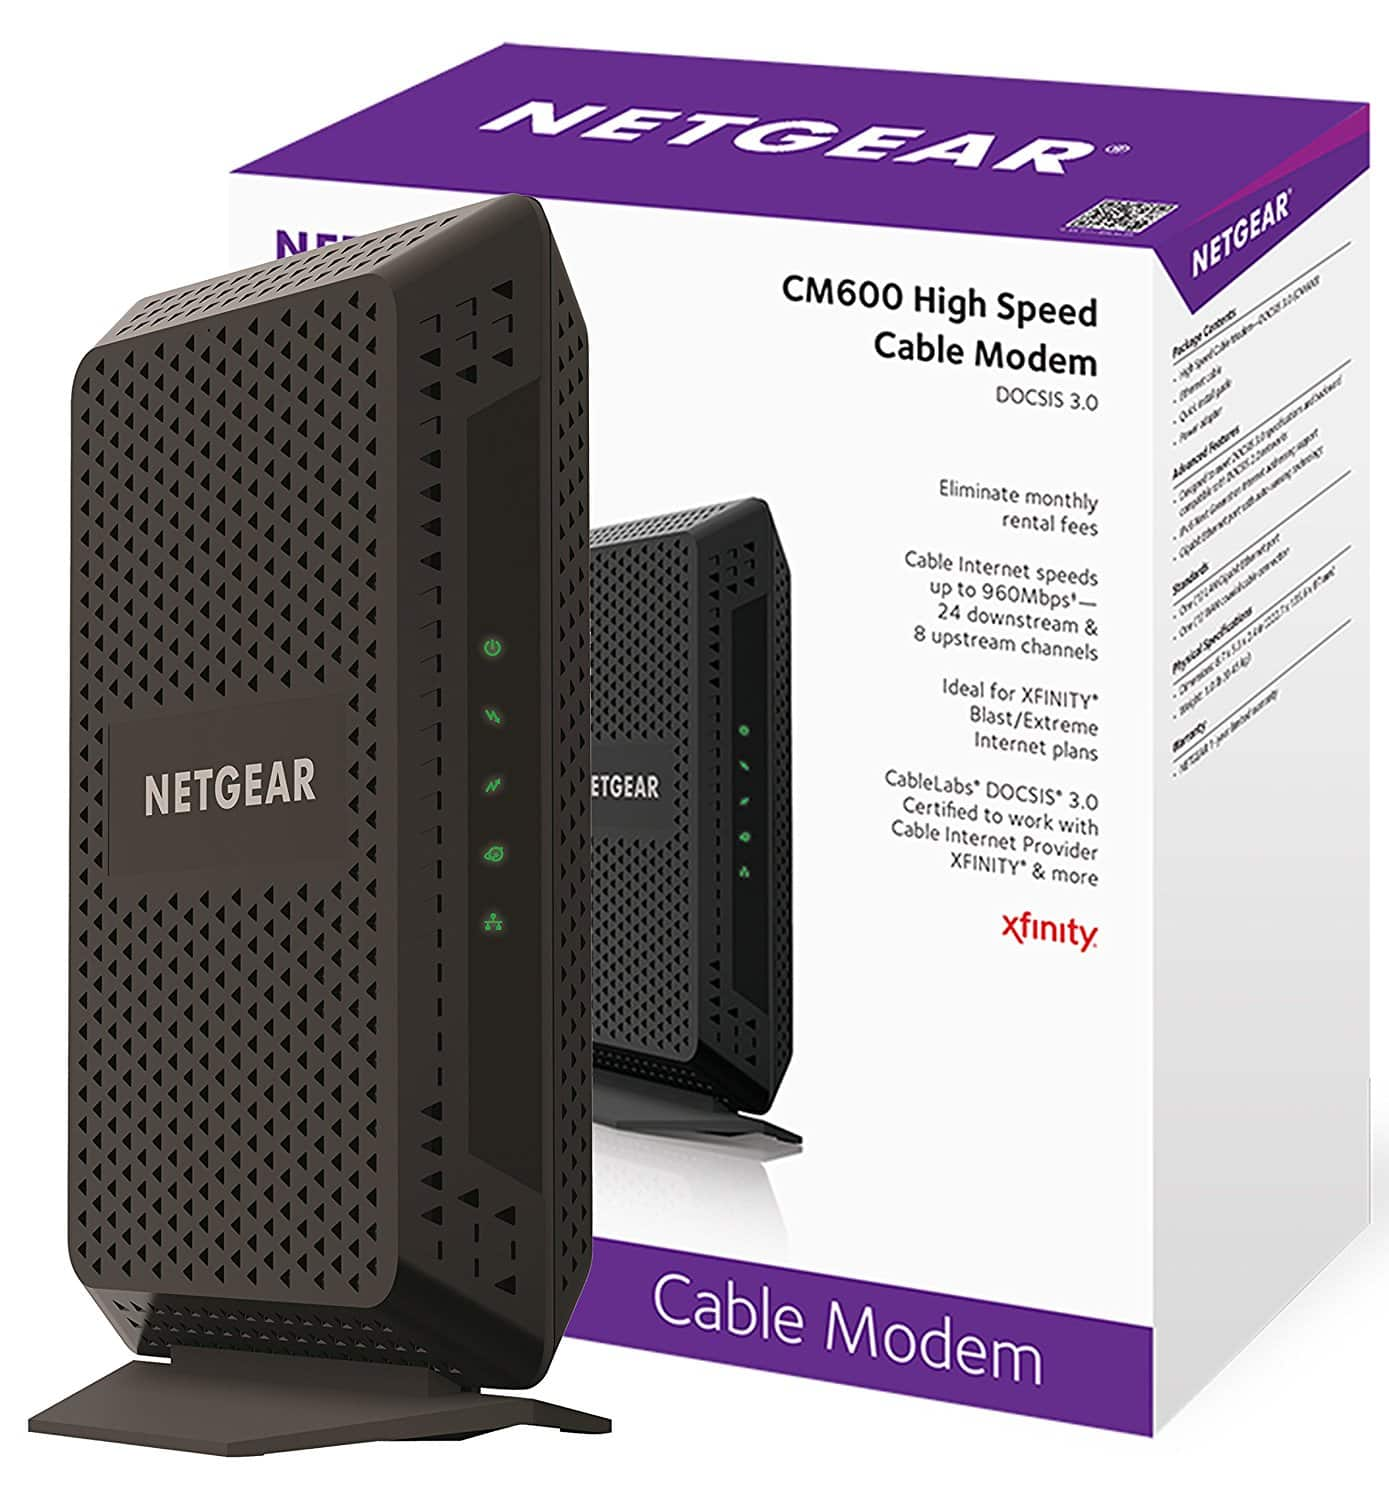 NETGEAR CM600 (24x8) DOCSIS 3.0 Cable Modem. Max download speeds of 960Mbps. Certified for XFINITY by Comcast, Time Warner Cable, Cox, Charter. better than BLACK FRIDAY DEAL $69.99